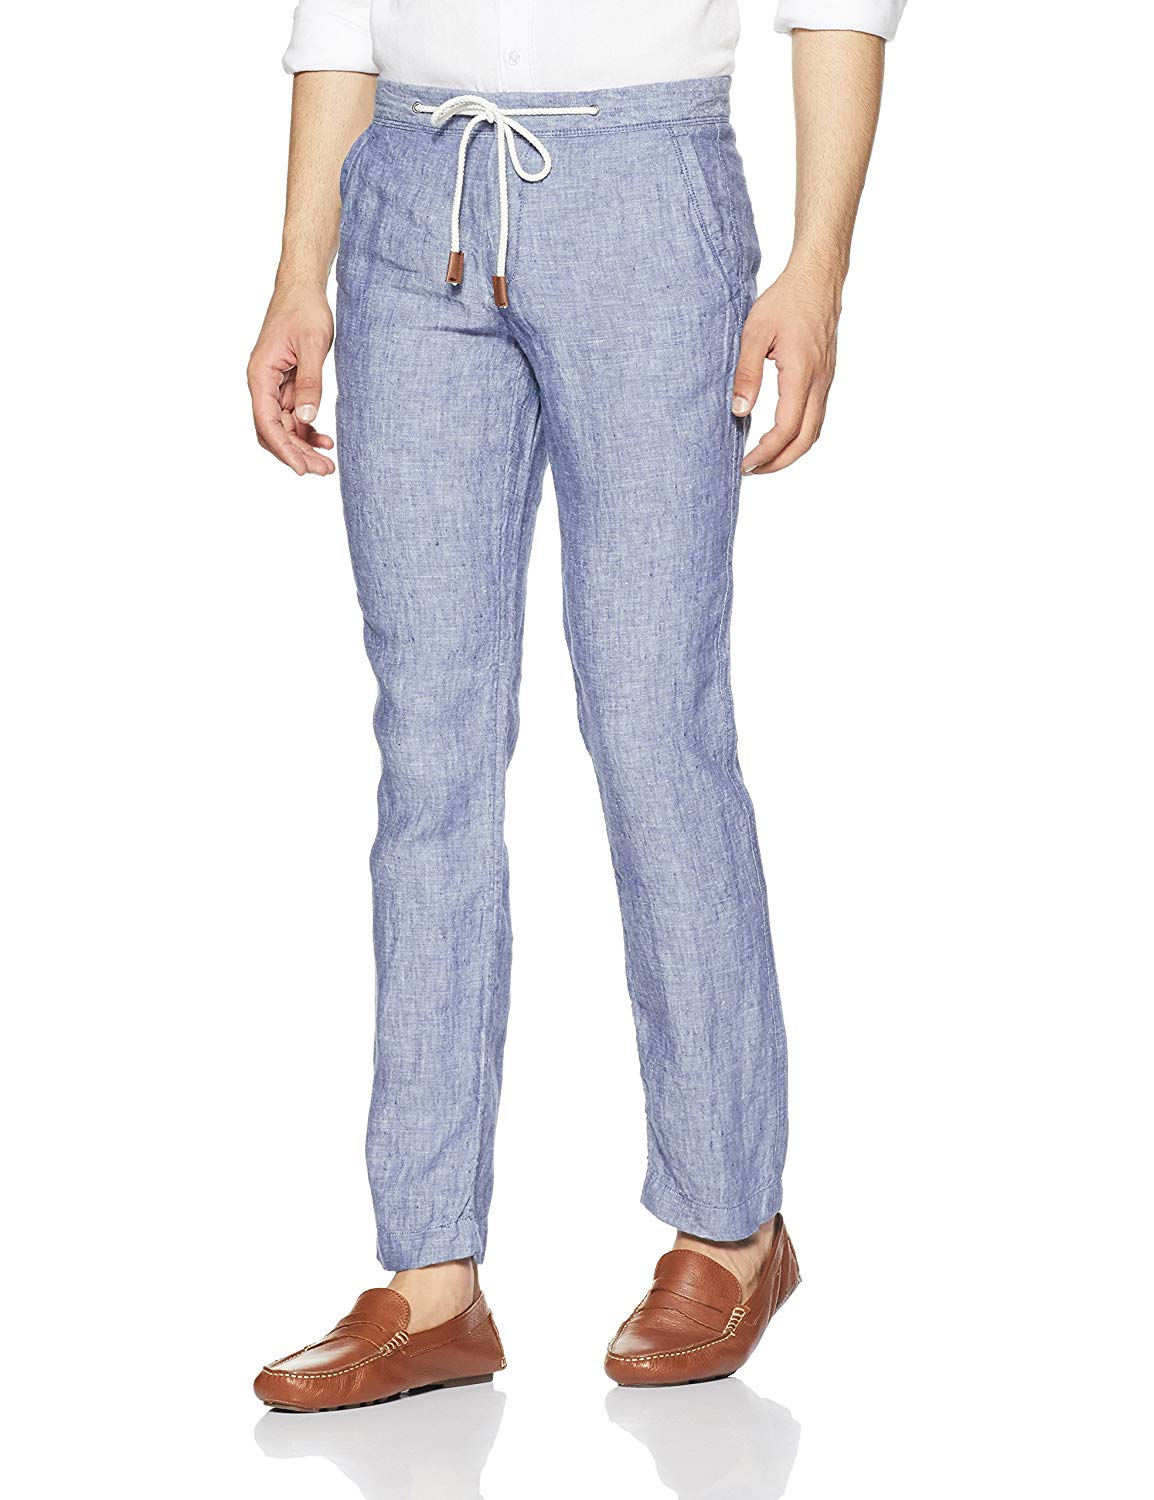 Celio Men's Chinos